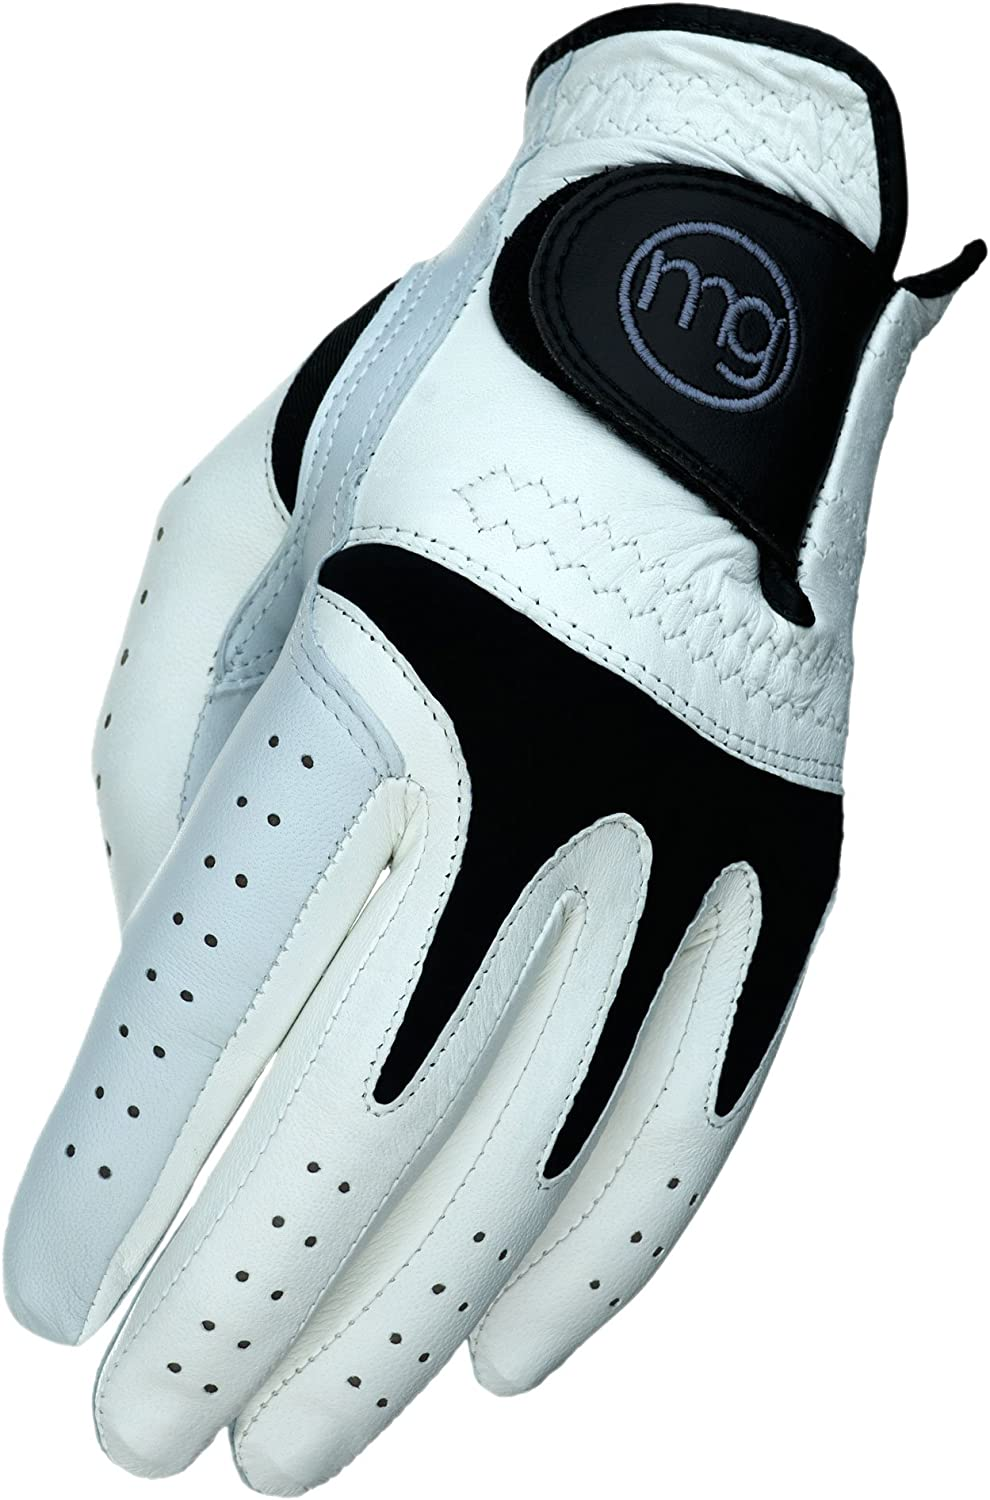 MG Golf Glove Mens TechGrip All-Cabretta Leather (Regular Sizes)